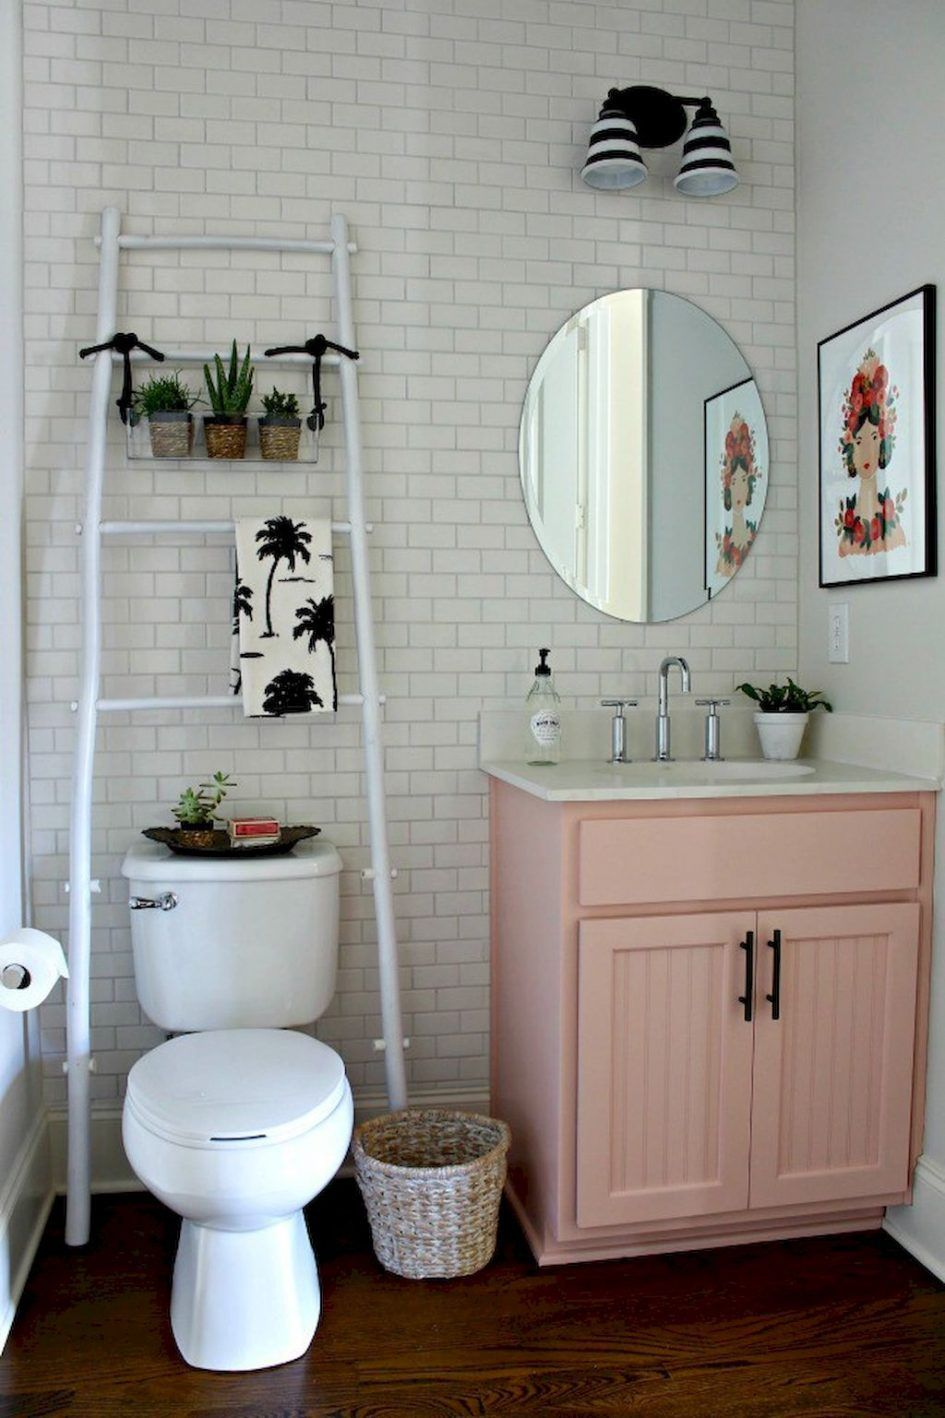 Furniture Apartment Bathroom Decorating Ideas On A Budget Smart